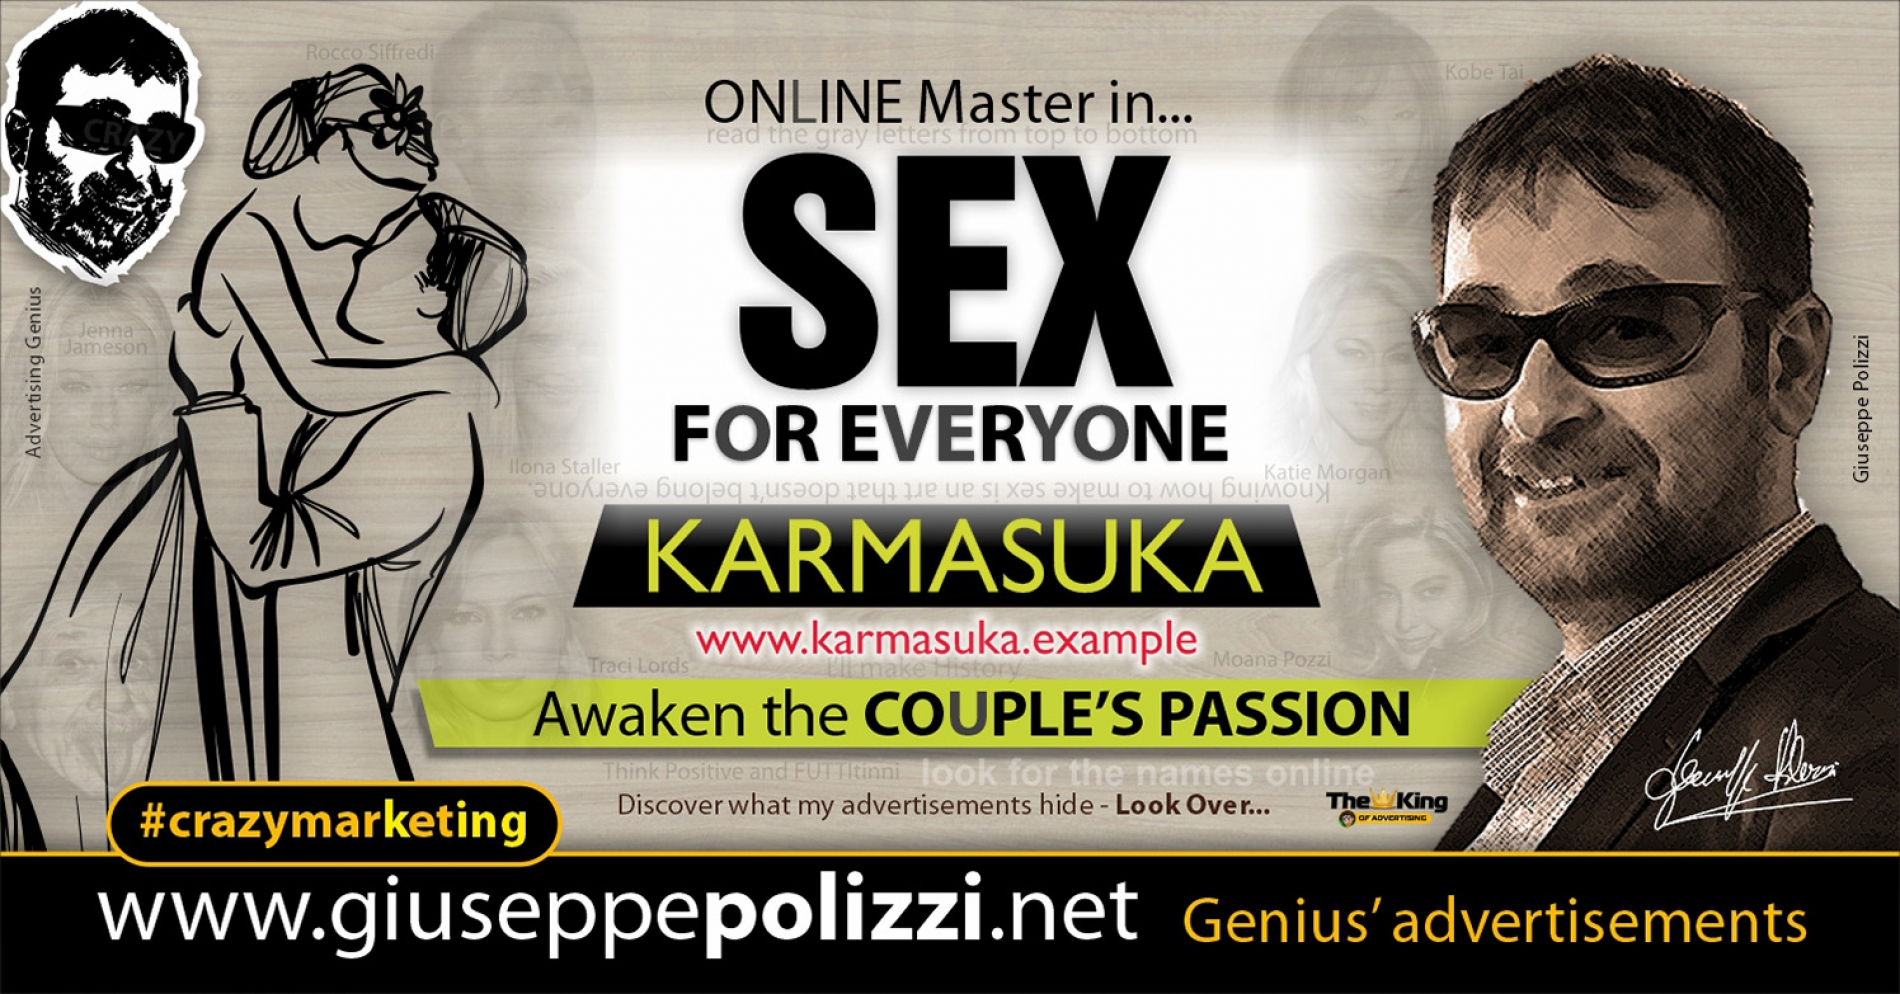 Giuseppe Polizzi Crazymarketing SEX for Everyone advertisements eng